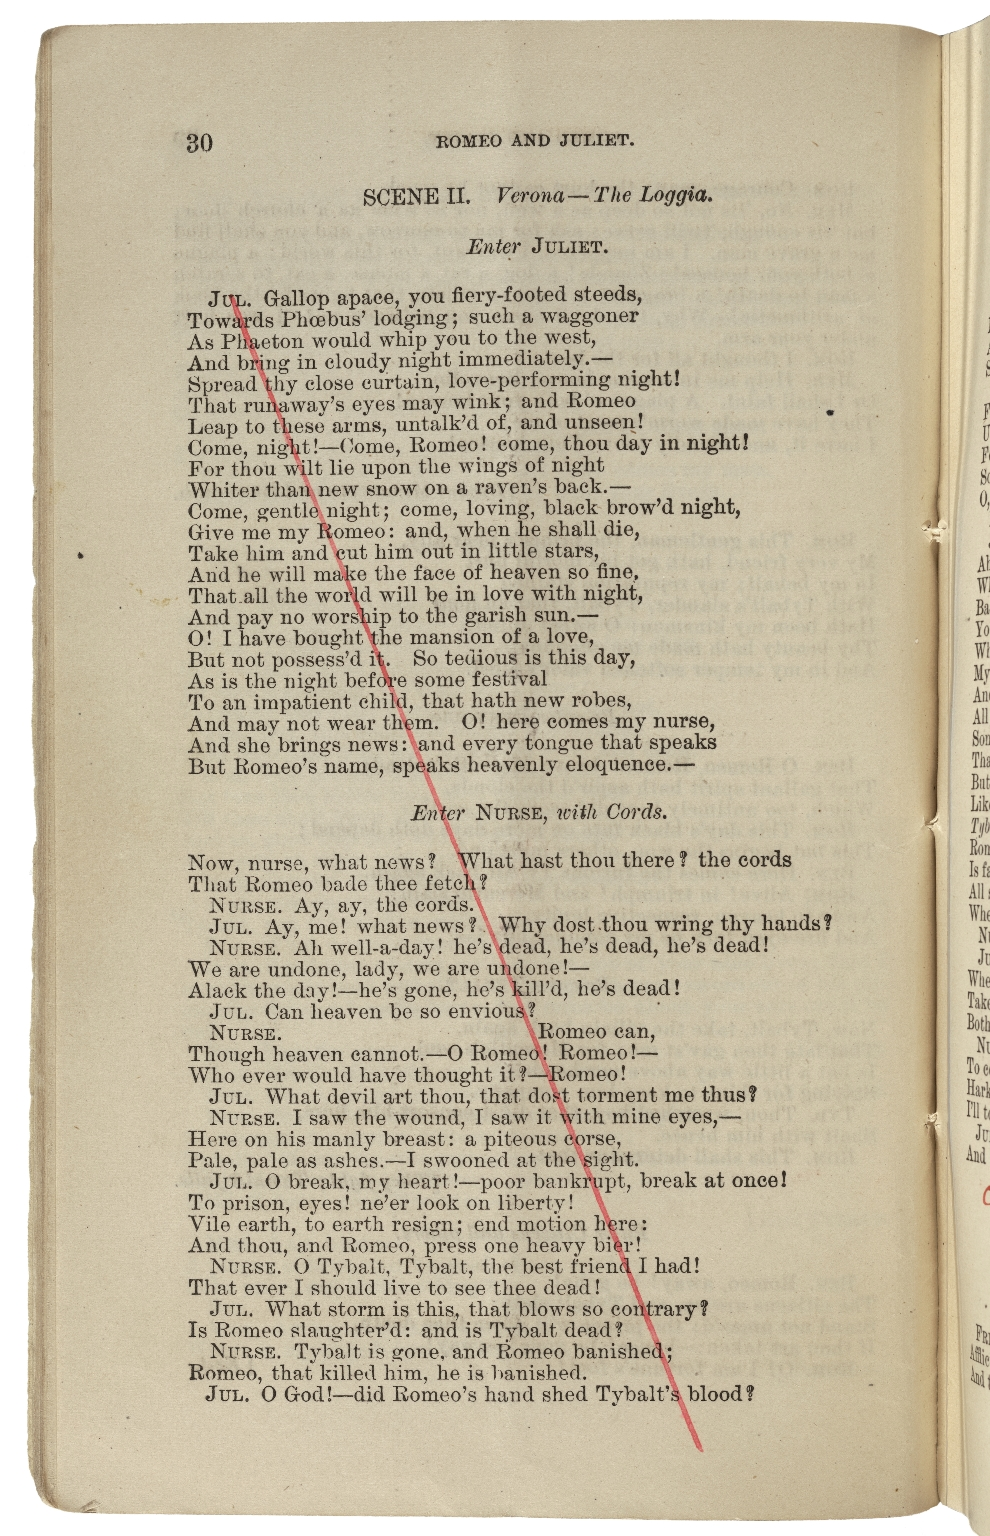 [Romeo and Juliet] Romeo and Juliet : a tragedy in five acts / by William Shakespeare ; as arranged for the stage by Henry Irving and presented at the Lyceum Theatre, London on Wednesday, March 8th, 1882.